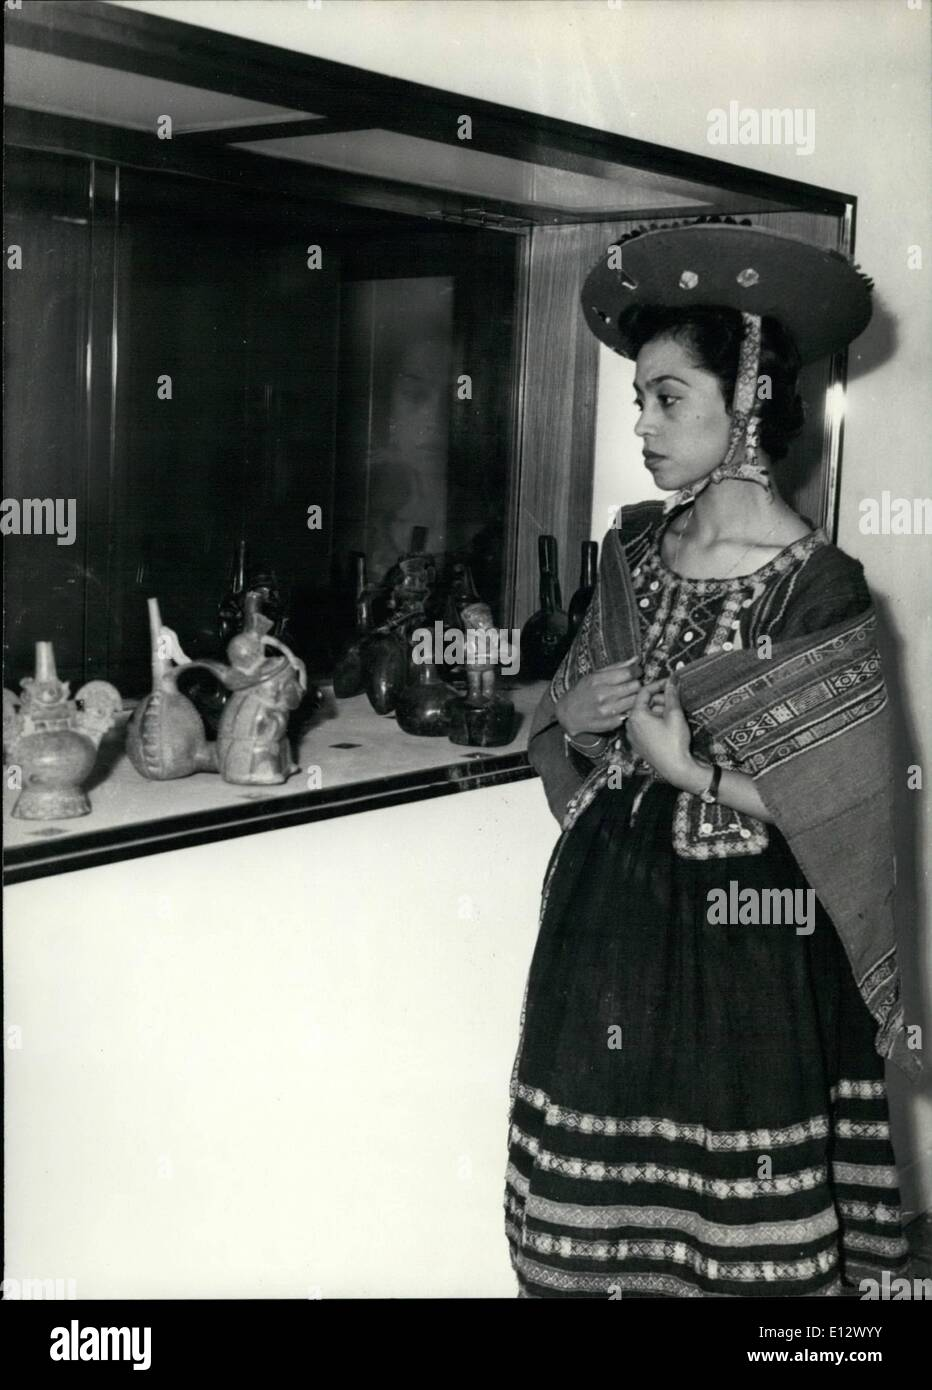 Feb. 25, 2012 - Peruvian Art Exhibition in Paris Today at Petit Palais, Paris opened a Peruvian Art Exhibition. OPS A young Peruvian Girl, in National Dress looks at very old statues in a window case. - Stock Image